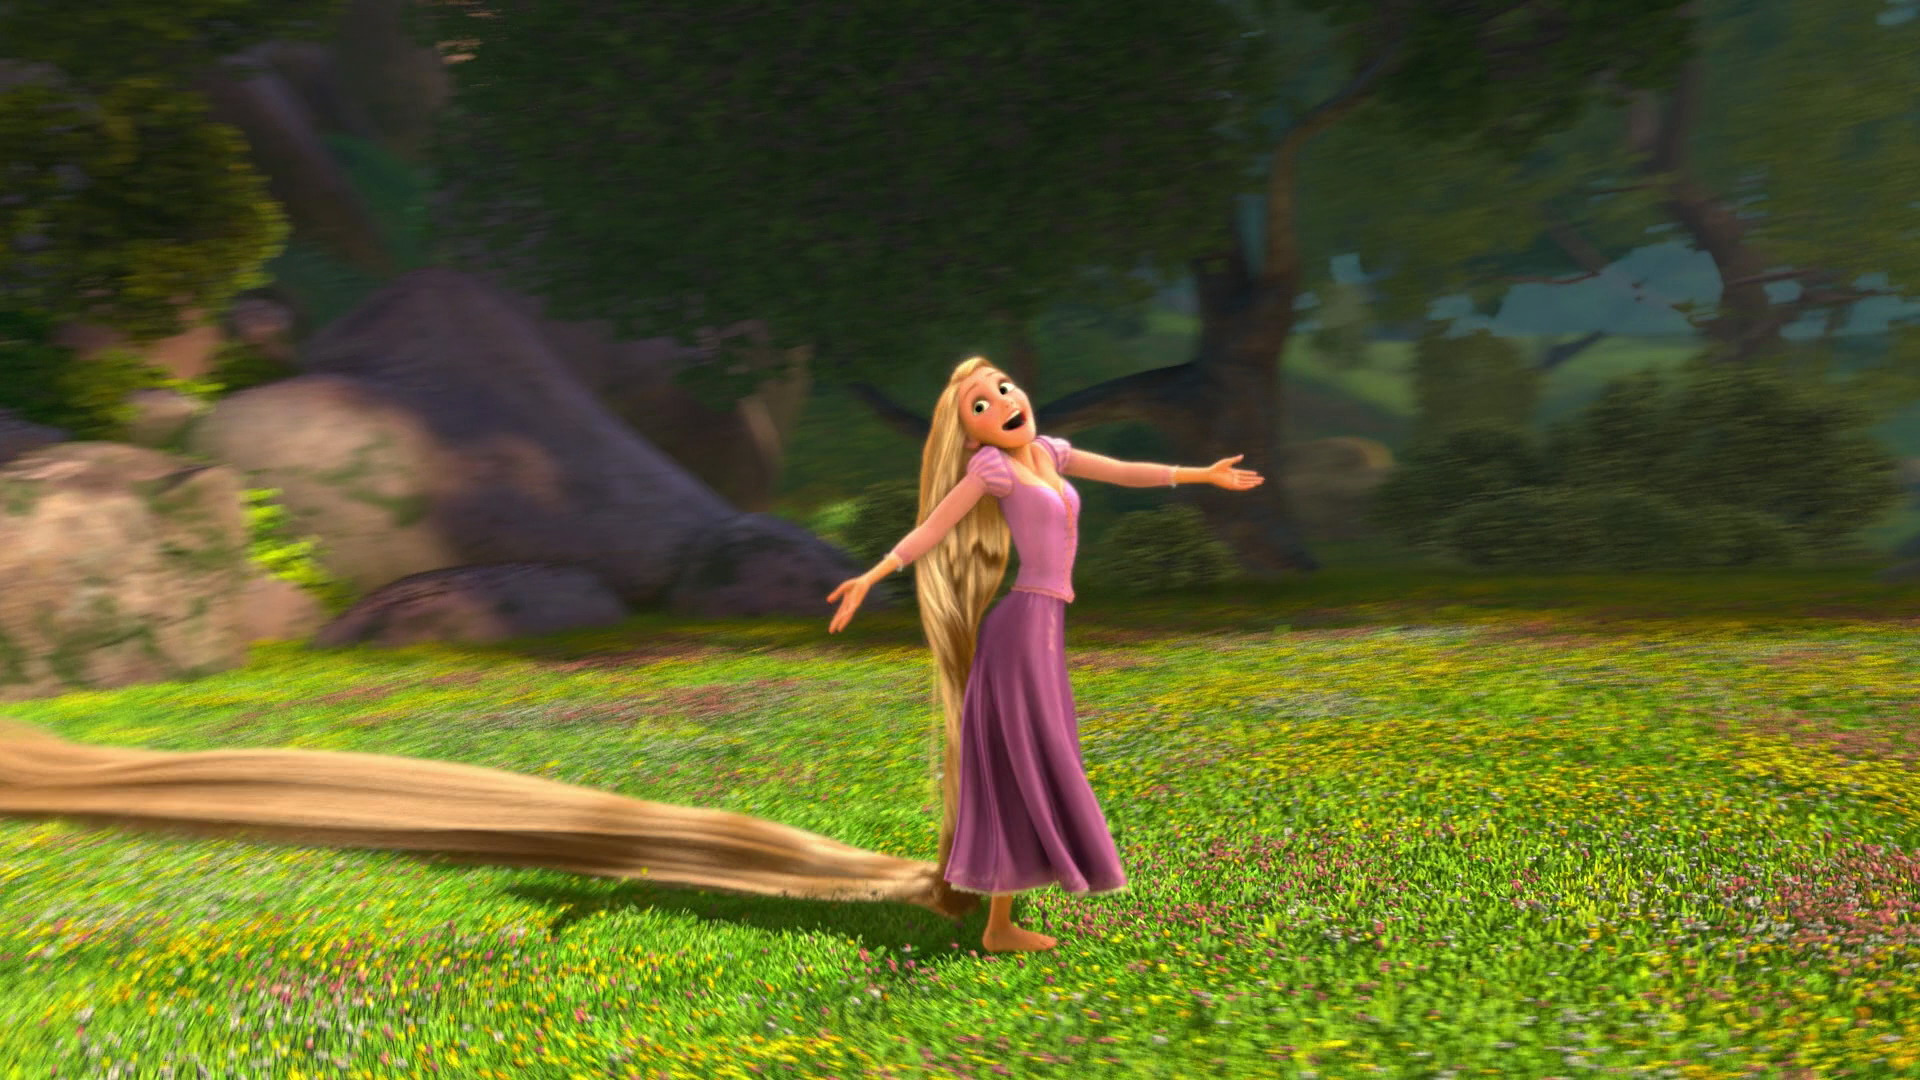 wallpaper.wiki-Free-Download-Disney-Tangled-Photo-PIC-WPD008785